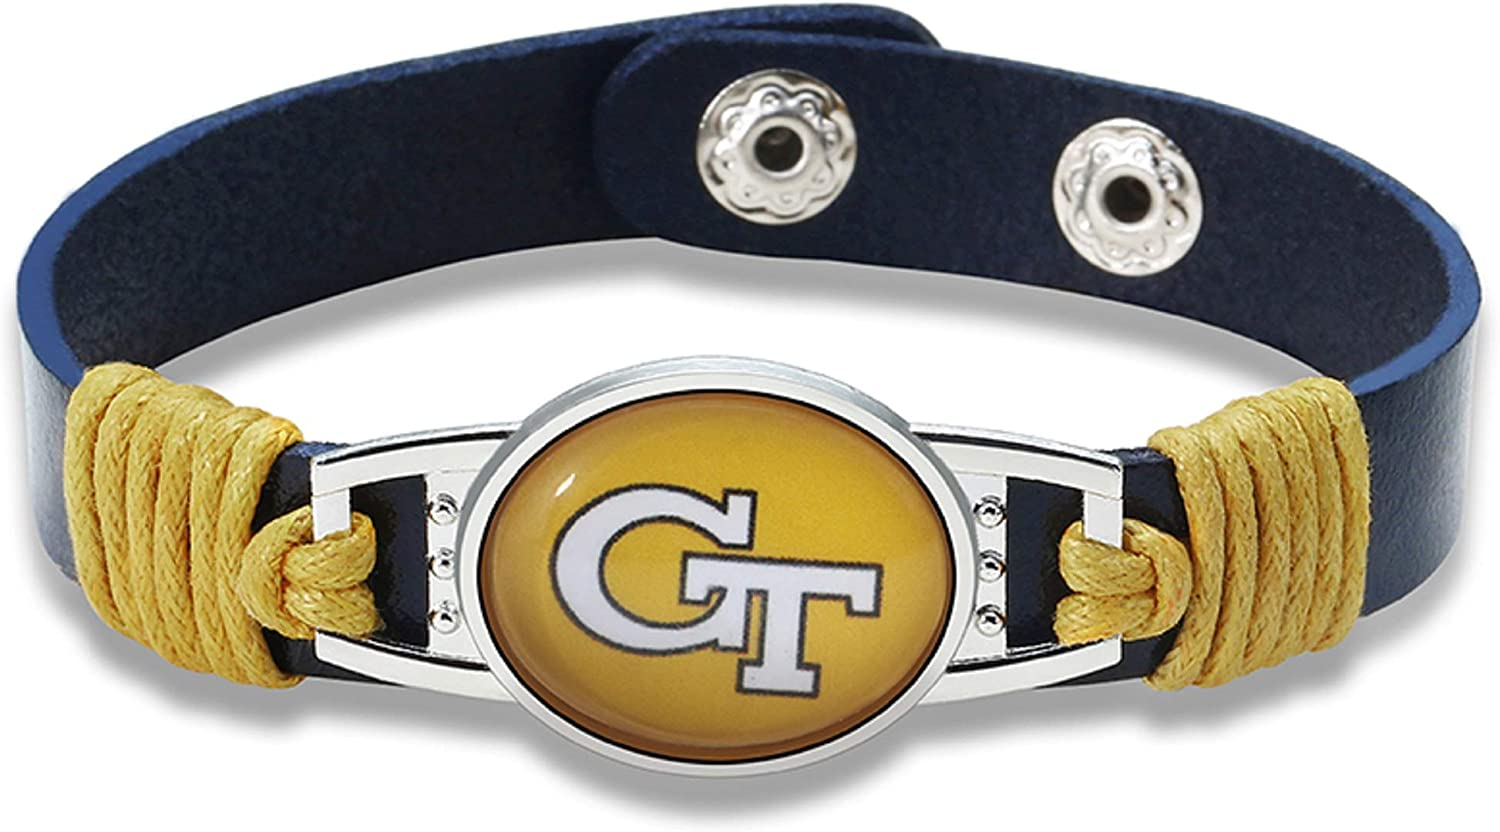 Georgia Tech Yellow Jackets Leather Bracelet with Snap Closure 7 to 9